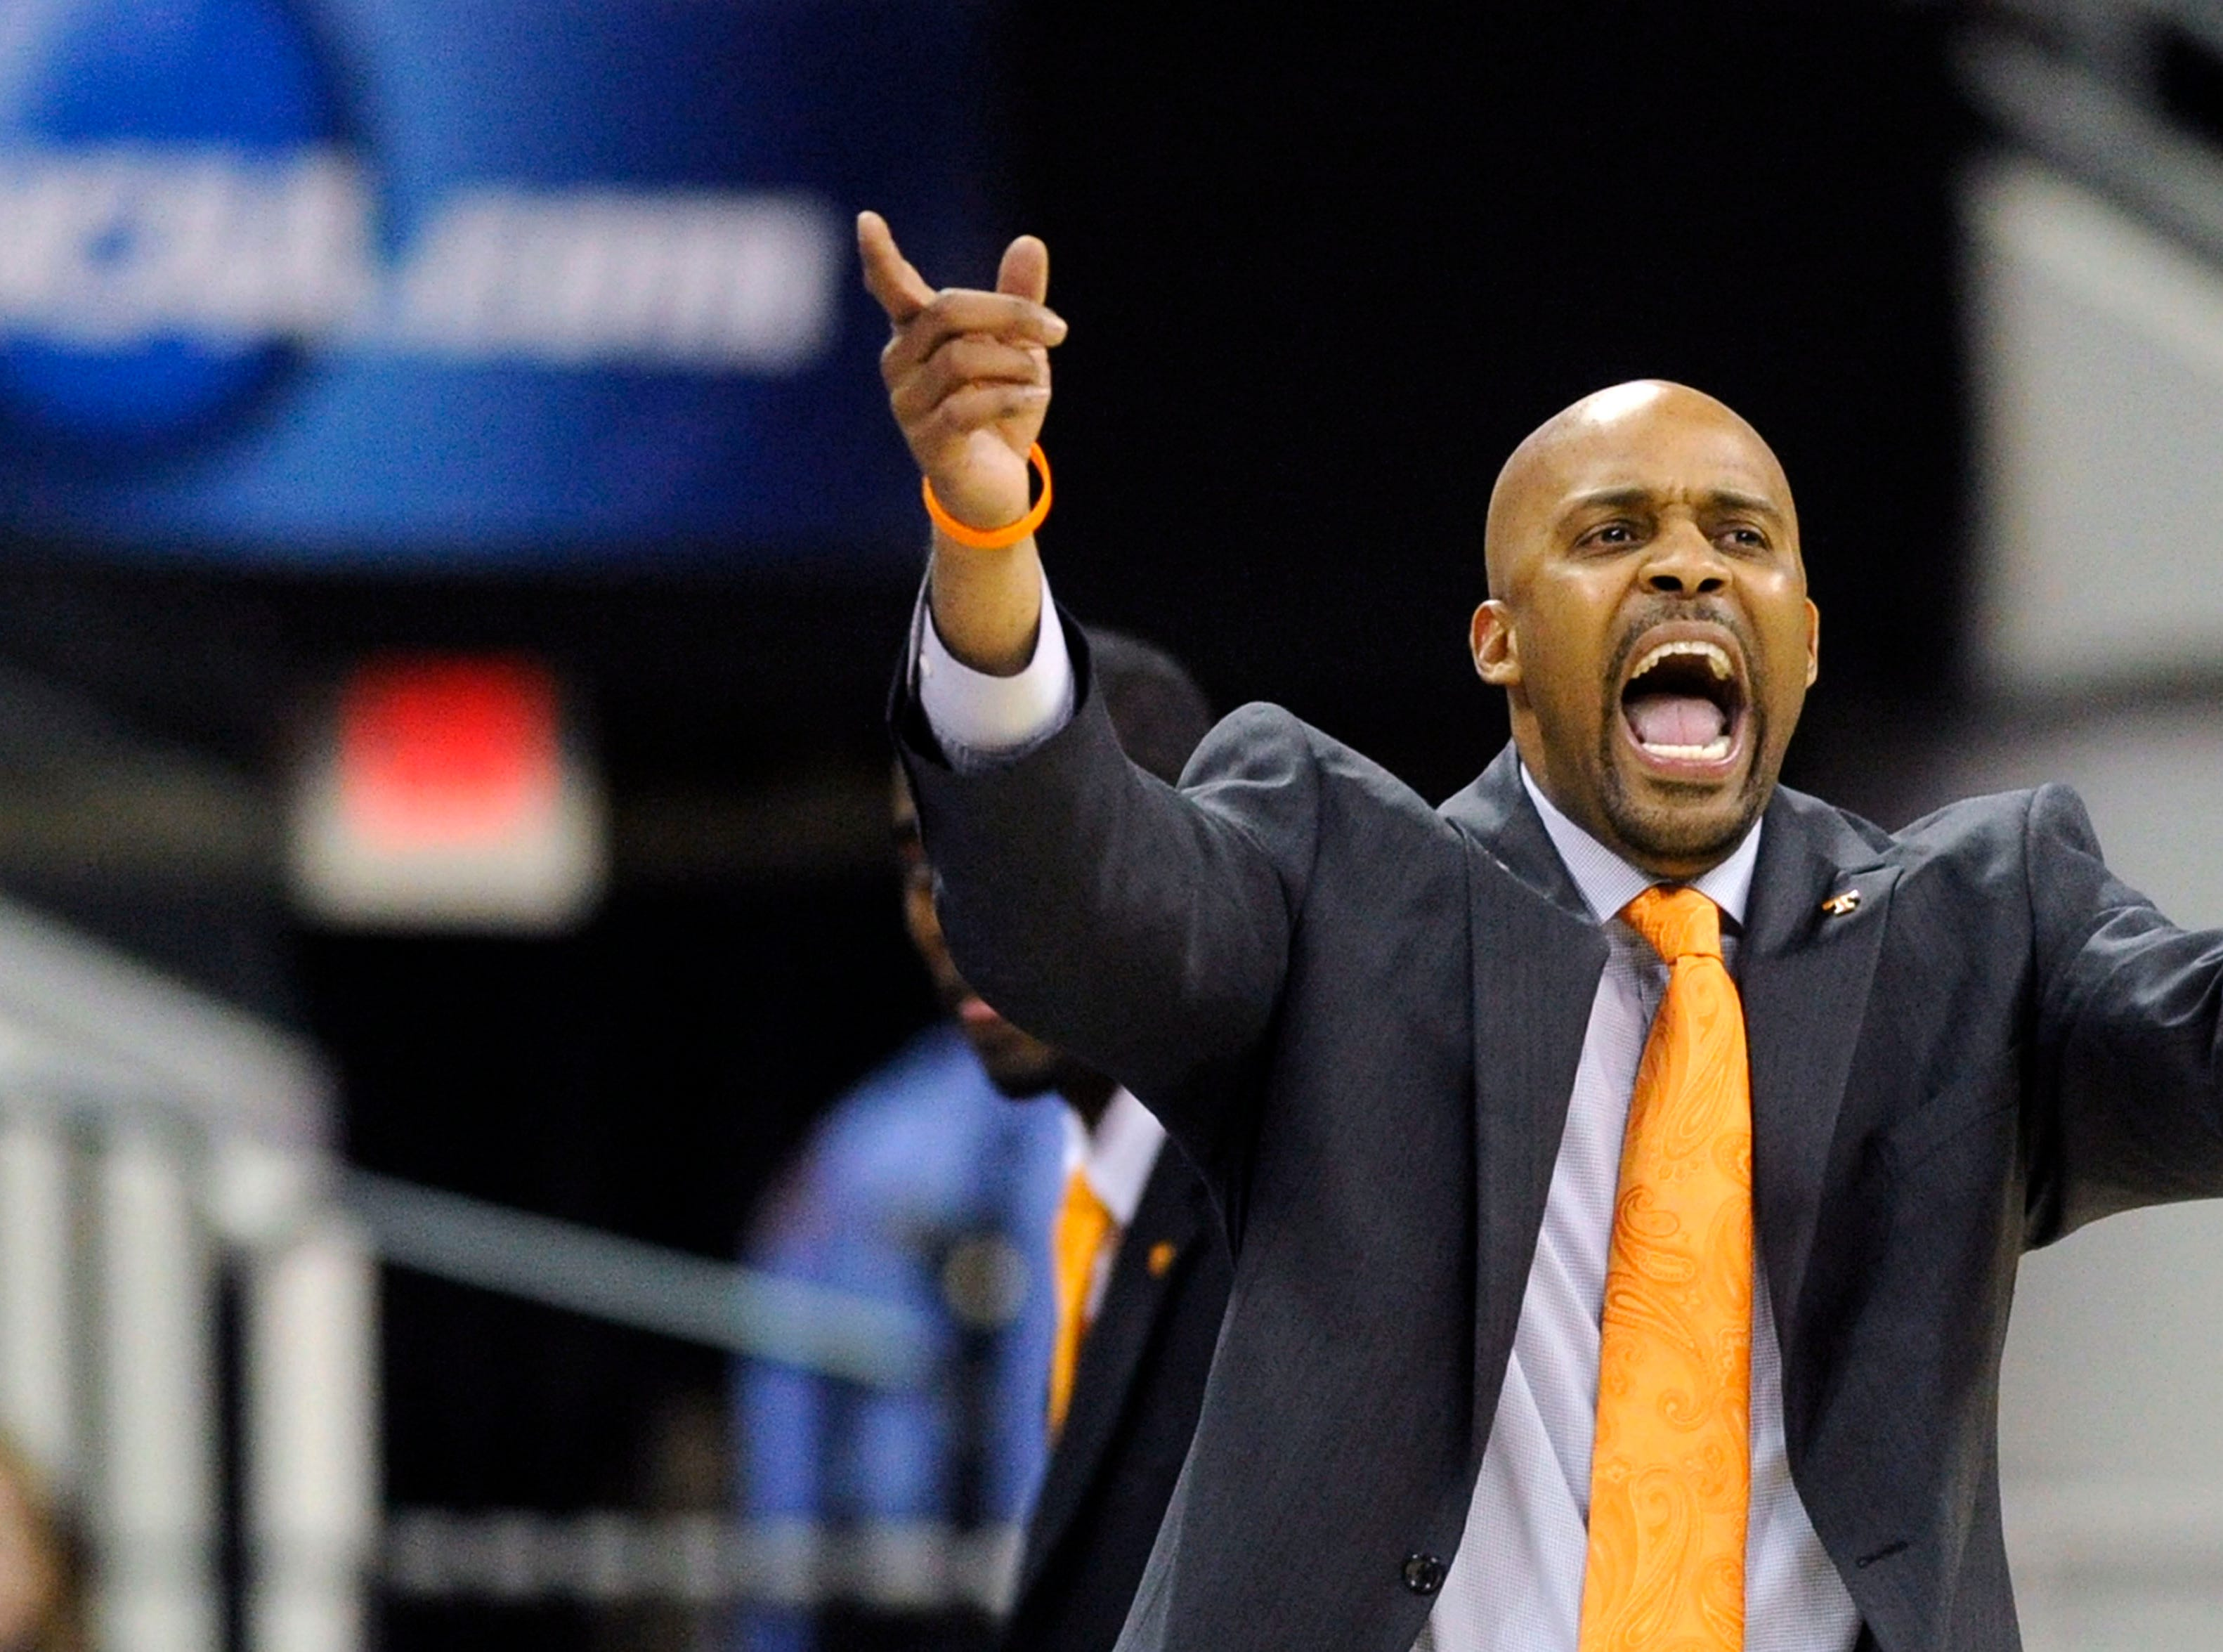 Tennessee head coach Cuonzo Martin shouts from the sideline during the first half of a third-round NCAA tournament game at the PNC Arena in Raleigh, N.C. on Sunday, March 23, 2014.